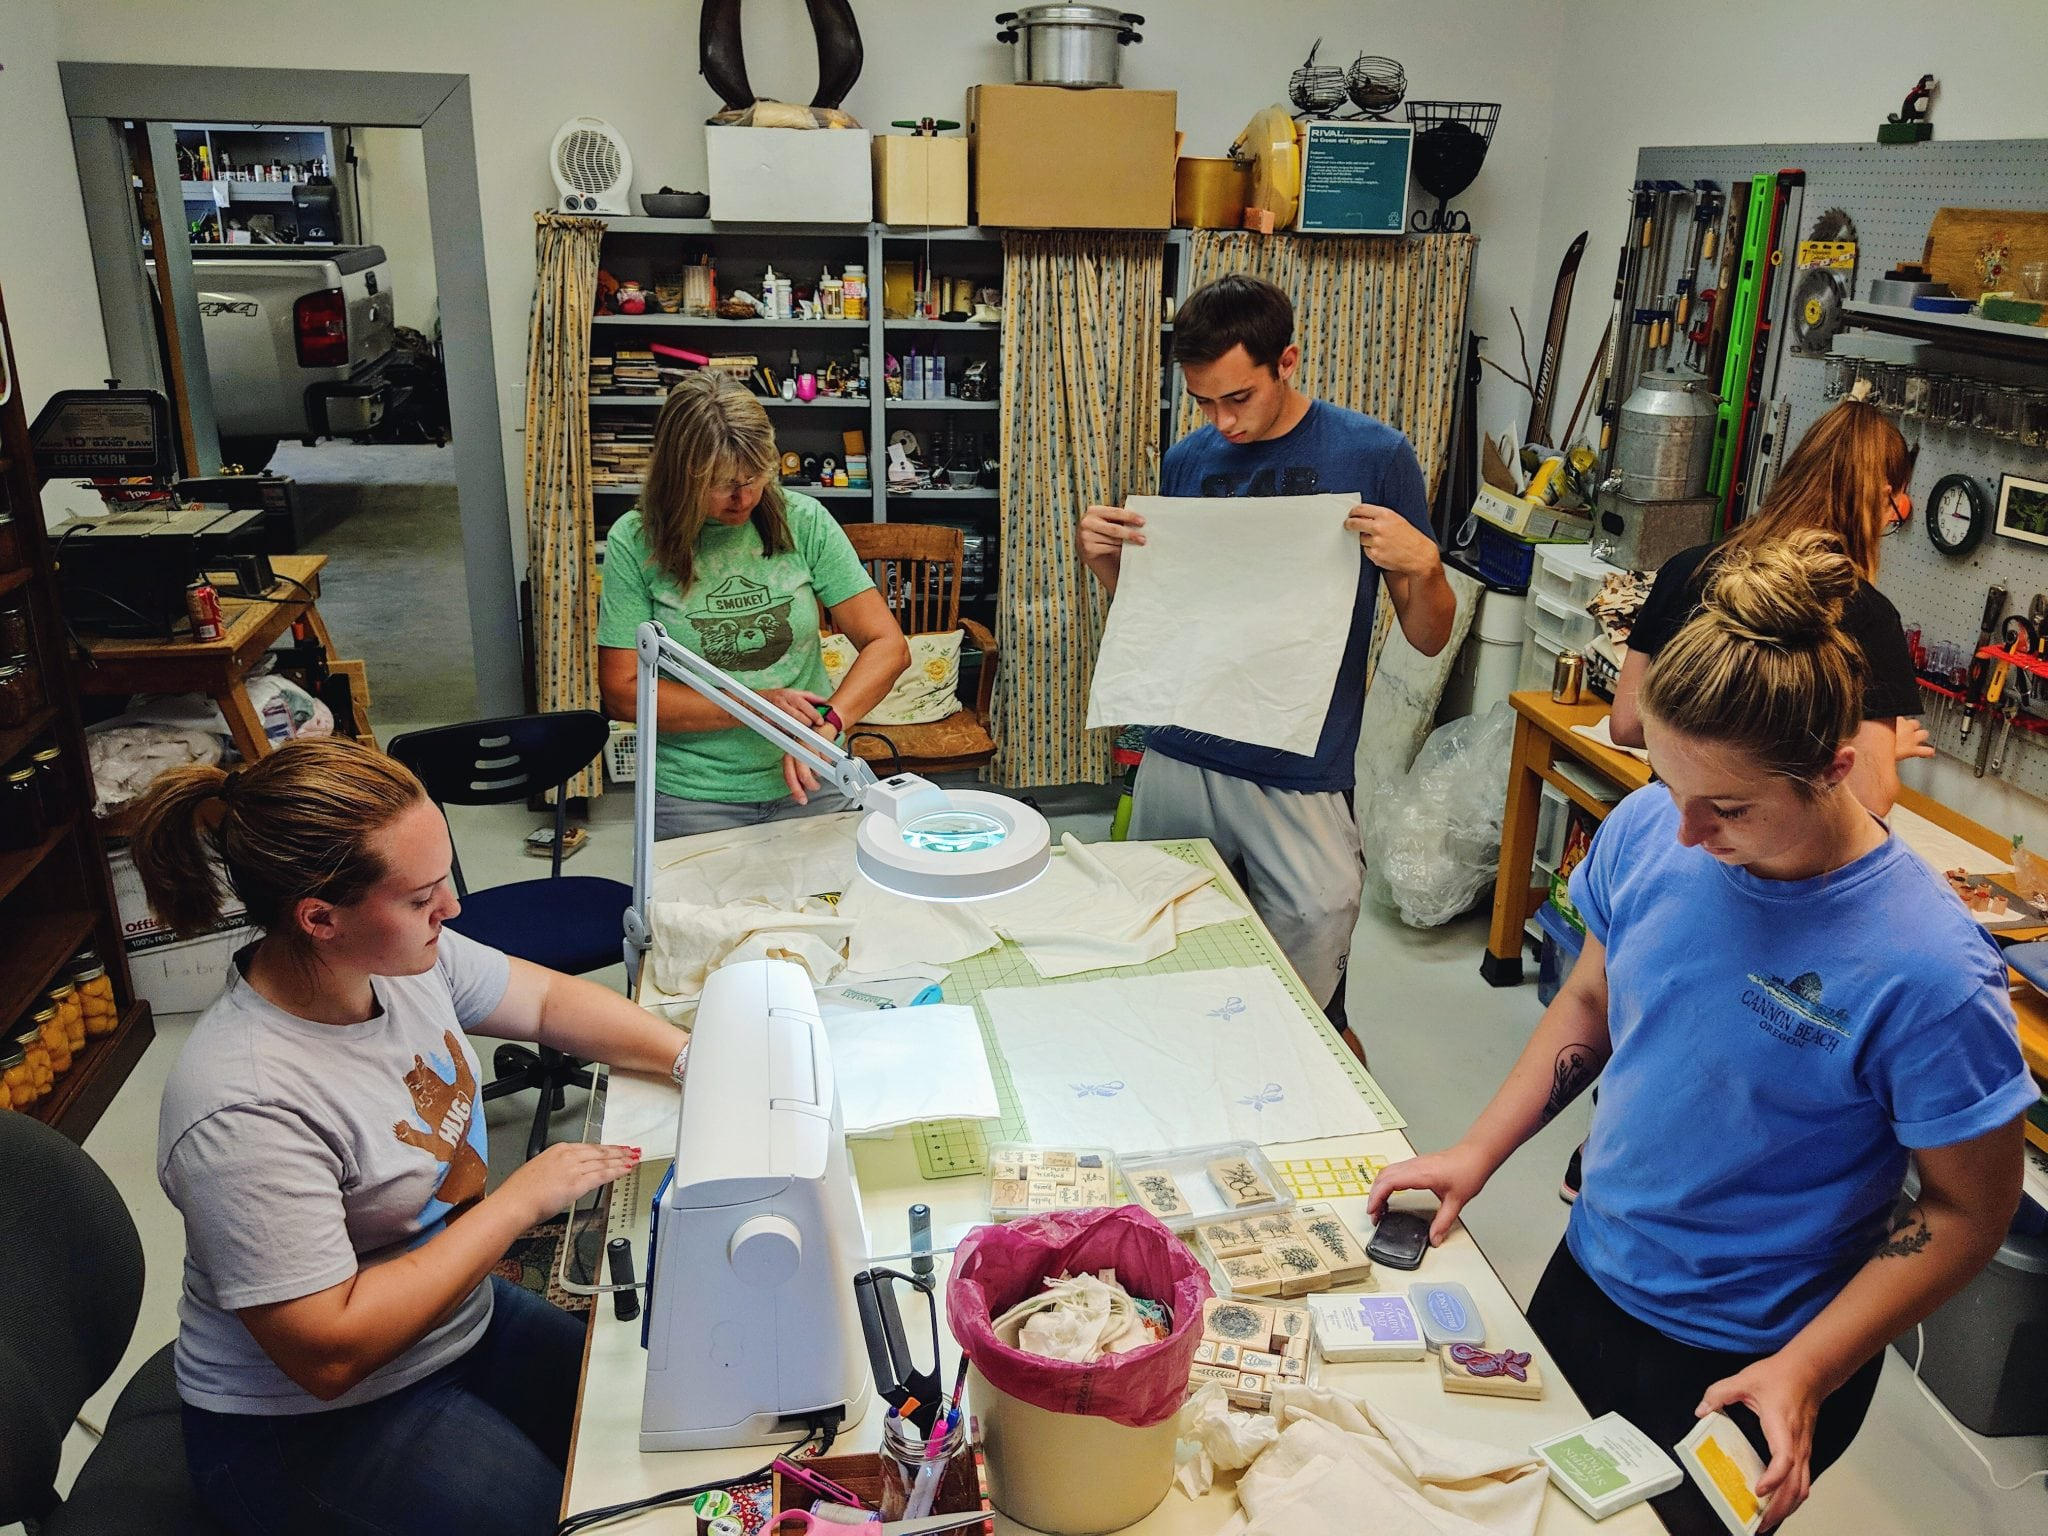 Five office workers are all busy working on their reuseable bags at Karen's house.